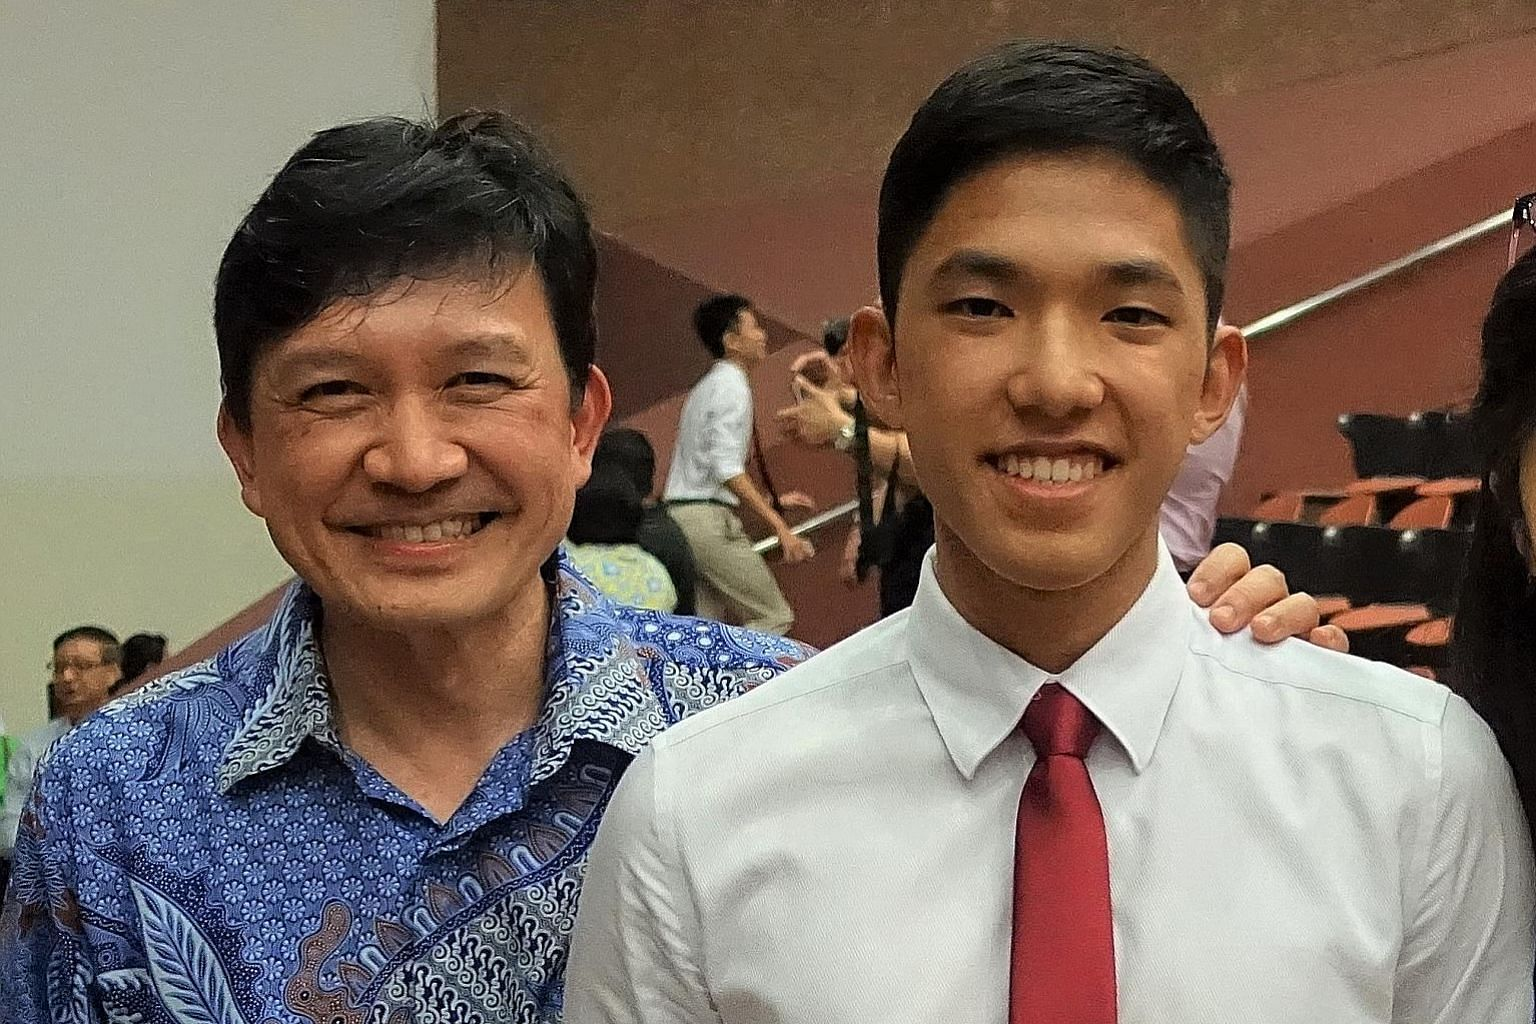 Dentist Tan Peng Hui, who rallied those in the dental industry to donate masks to nursing homes, with his son Caleb, a medical student who volunteered his help in the Covid-19 fight. PHOTO: COURTESY OF TAN PENG HUI